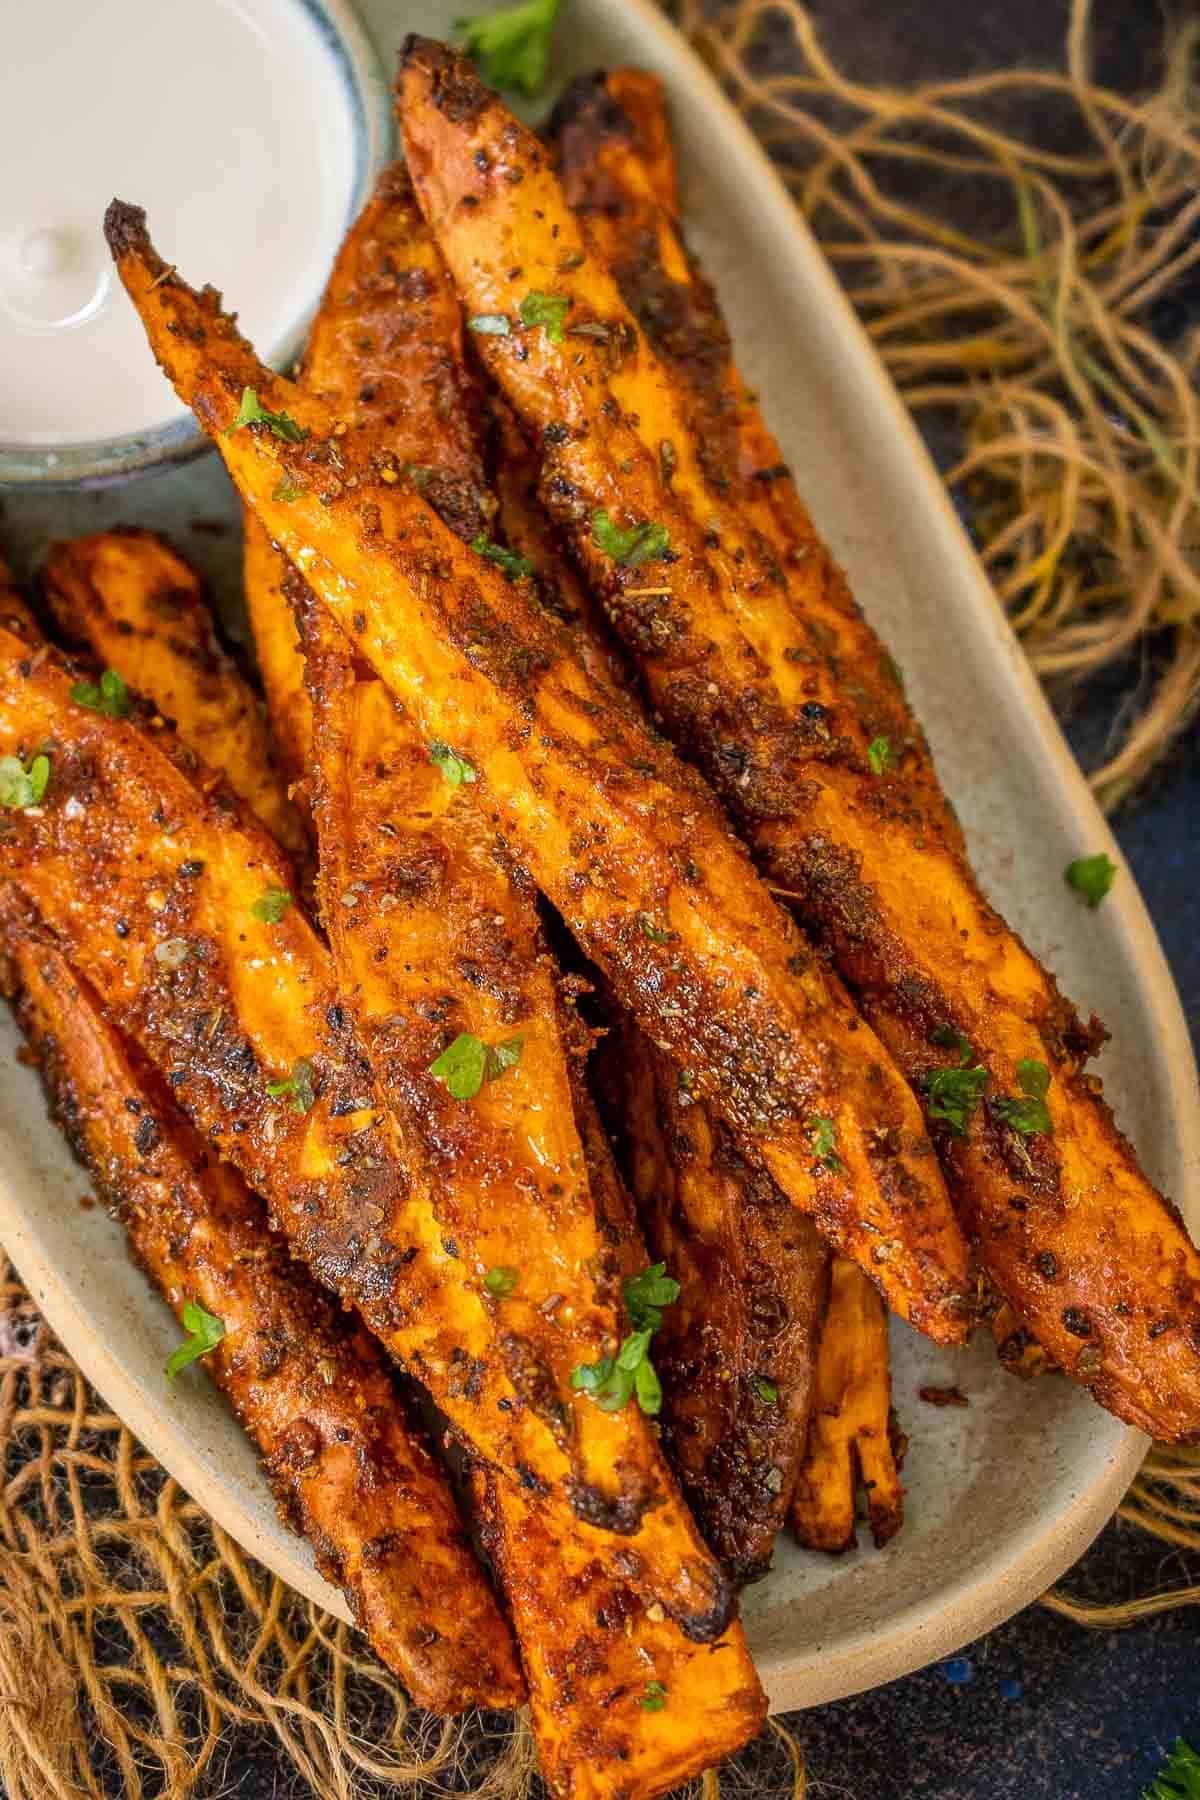 Oven roasted sweet potato wedges served on a plate.